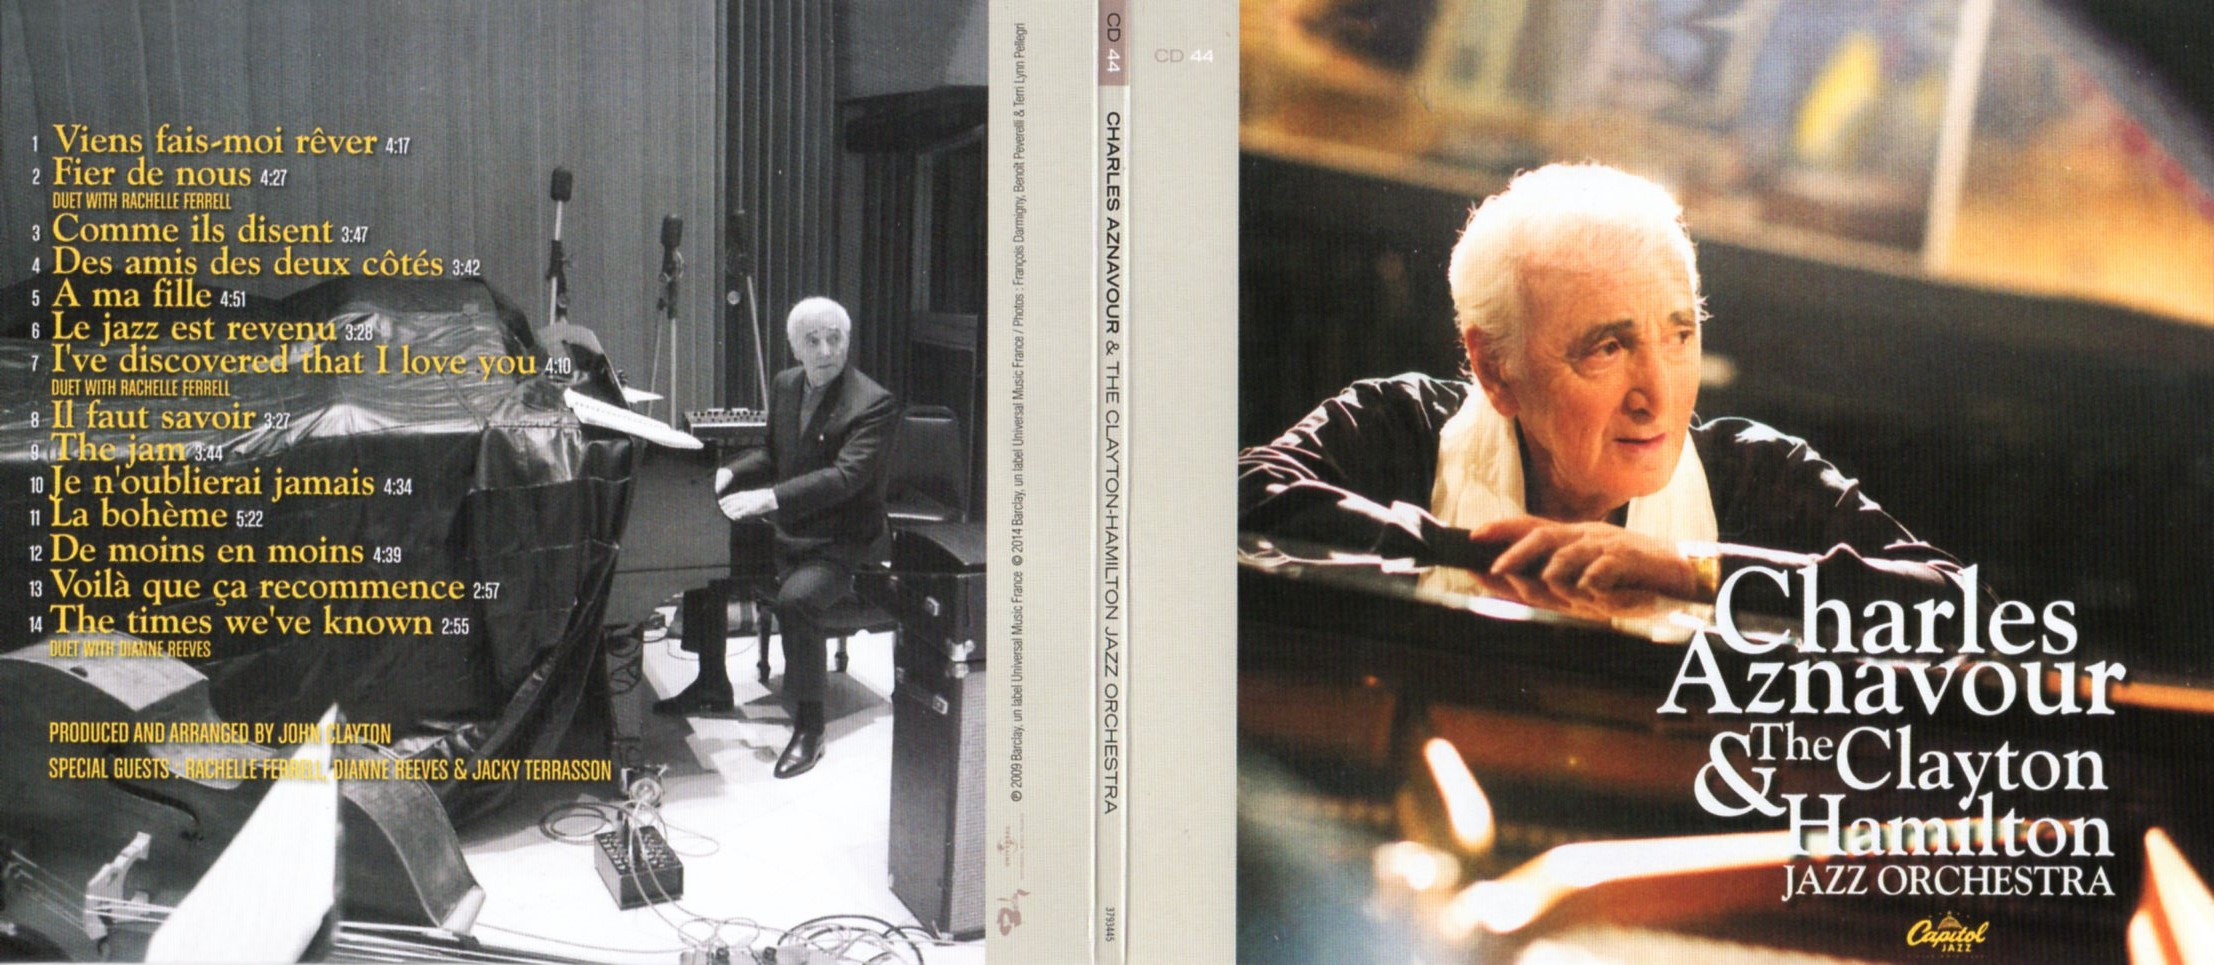 CHARLES AZNAVOUR - Charles Aznavour and The Clayton Hamilton Jazz Orchestra (2009) Gatefold Card board sleeve - CD